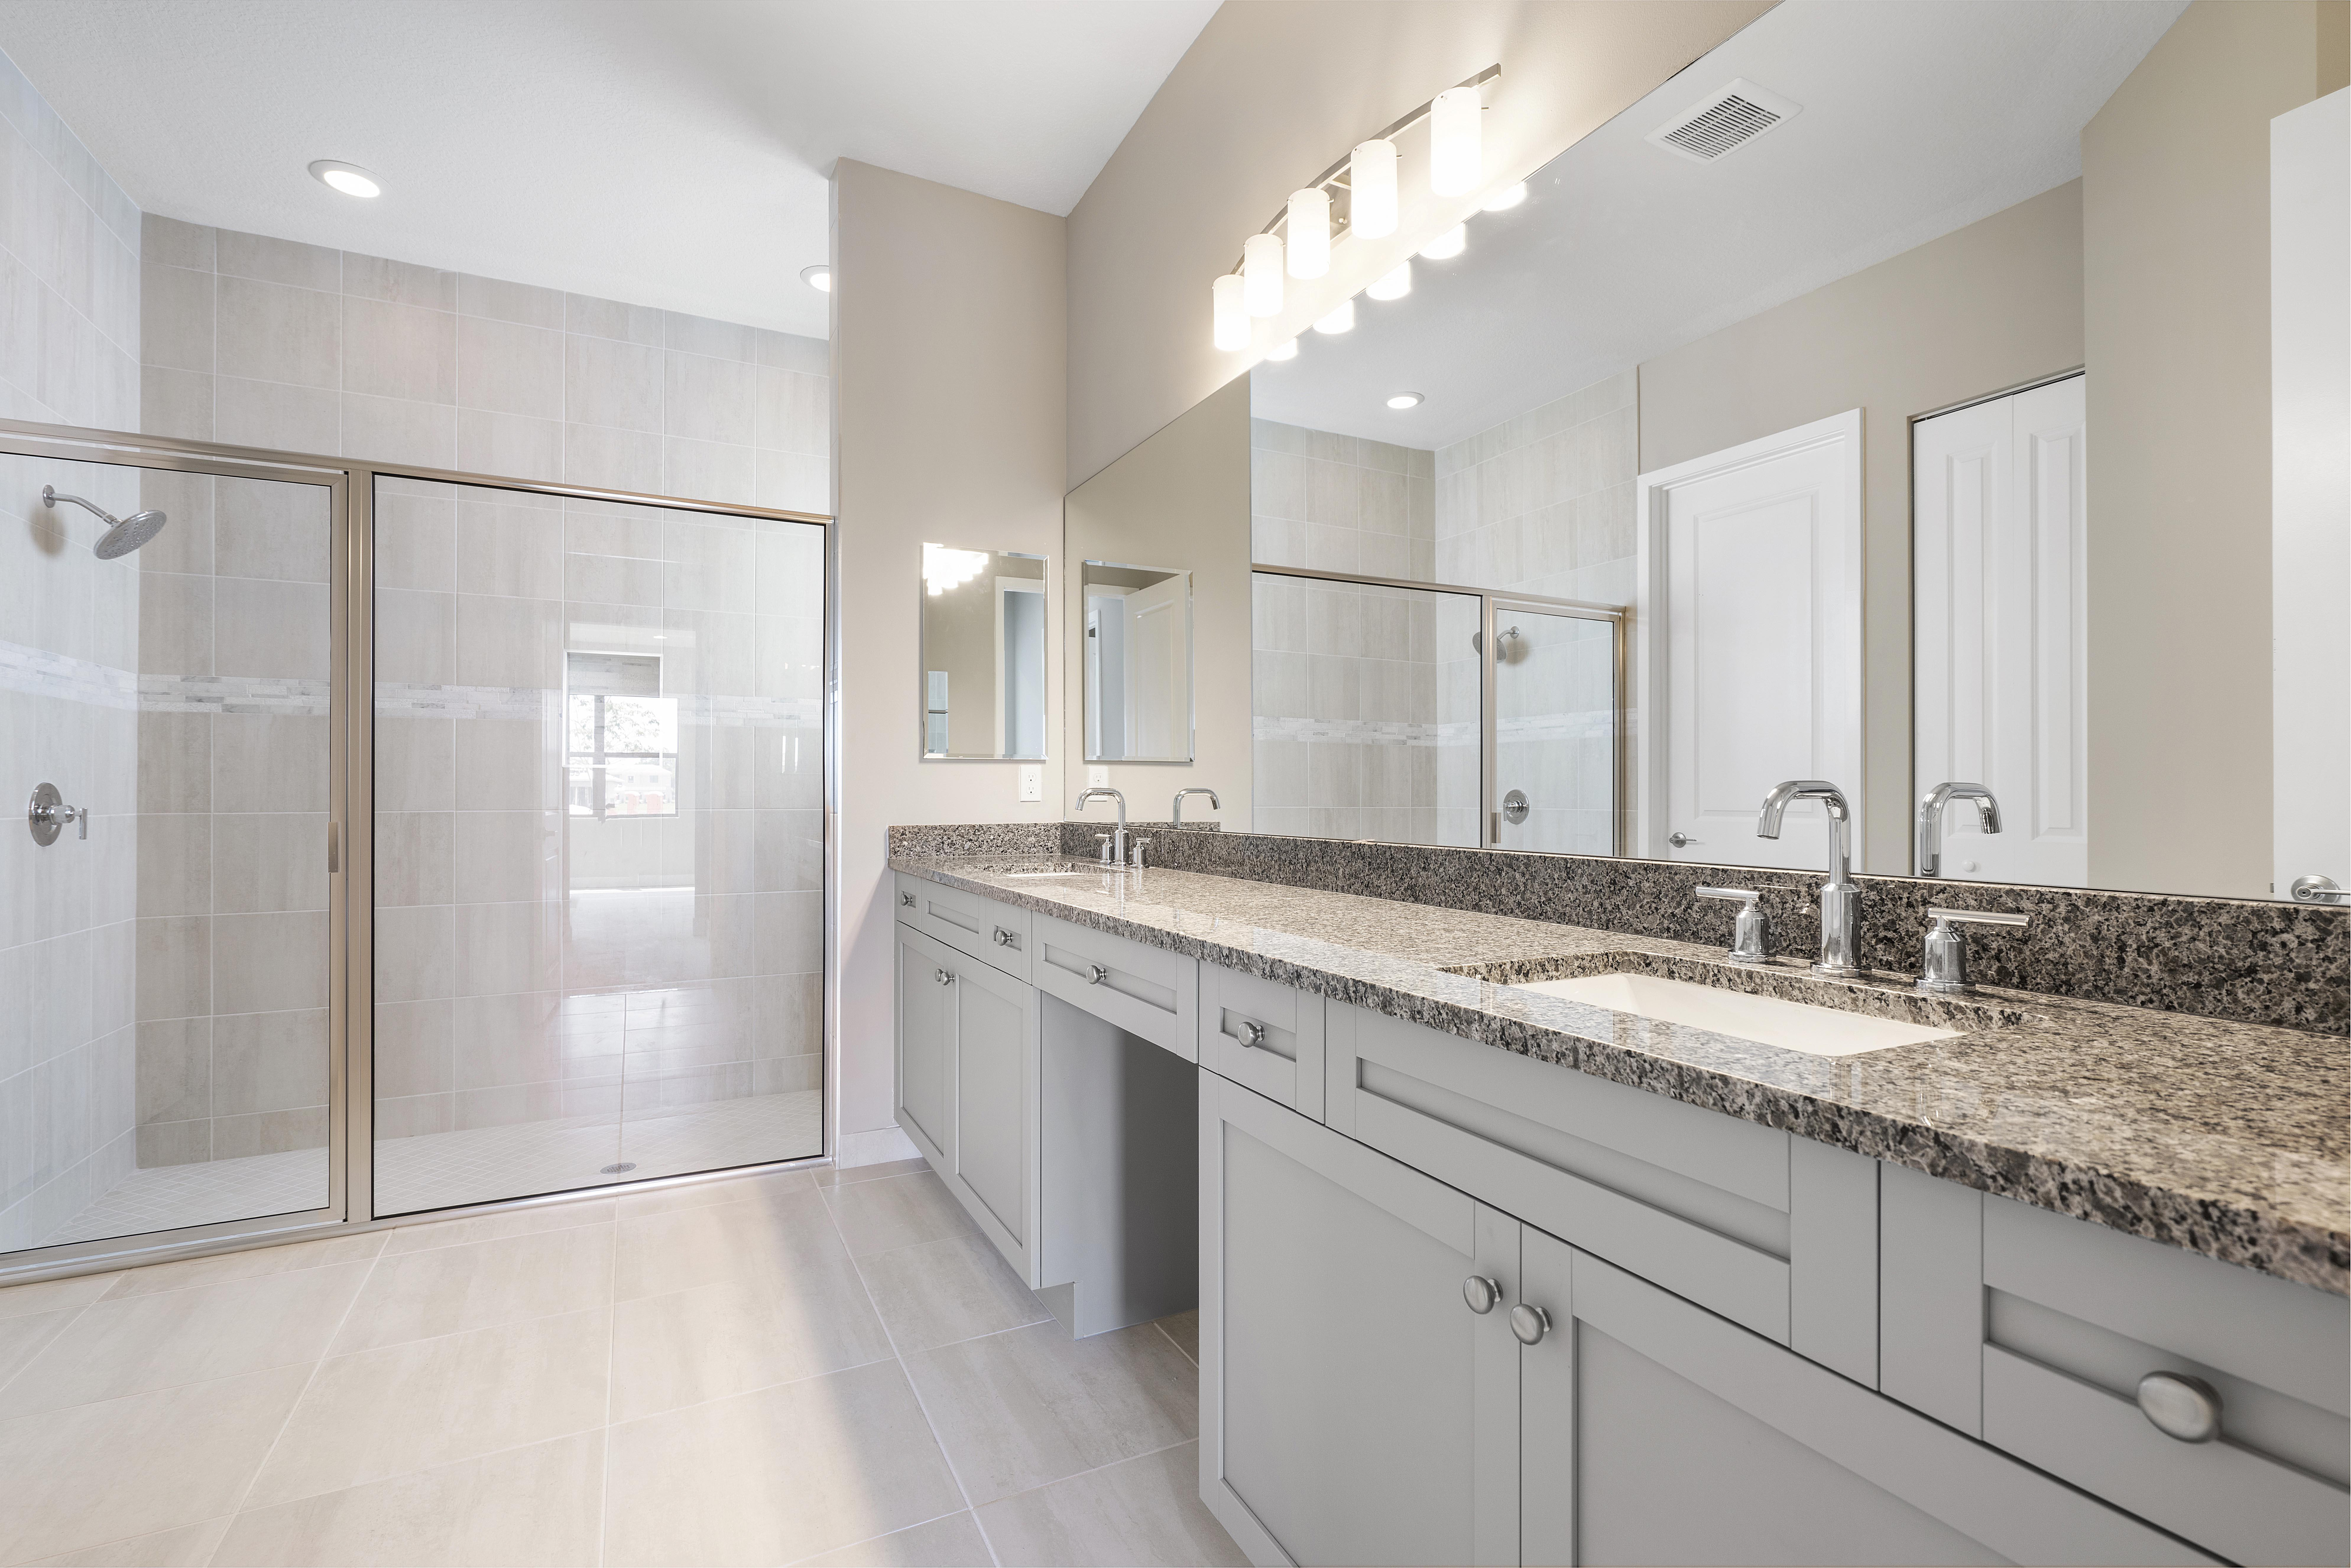 Bathroom featured in the Lago By Akel Homes in Palm Beach County, FL